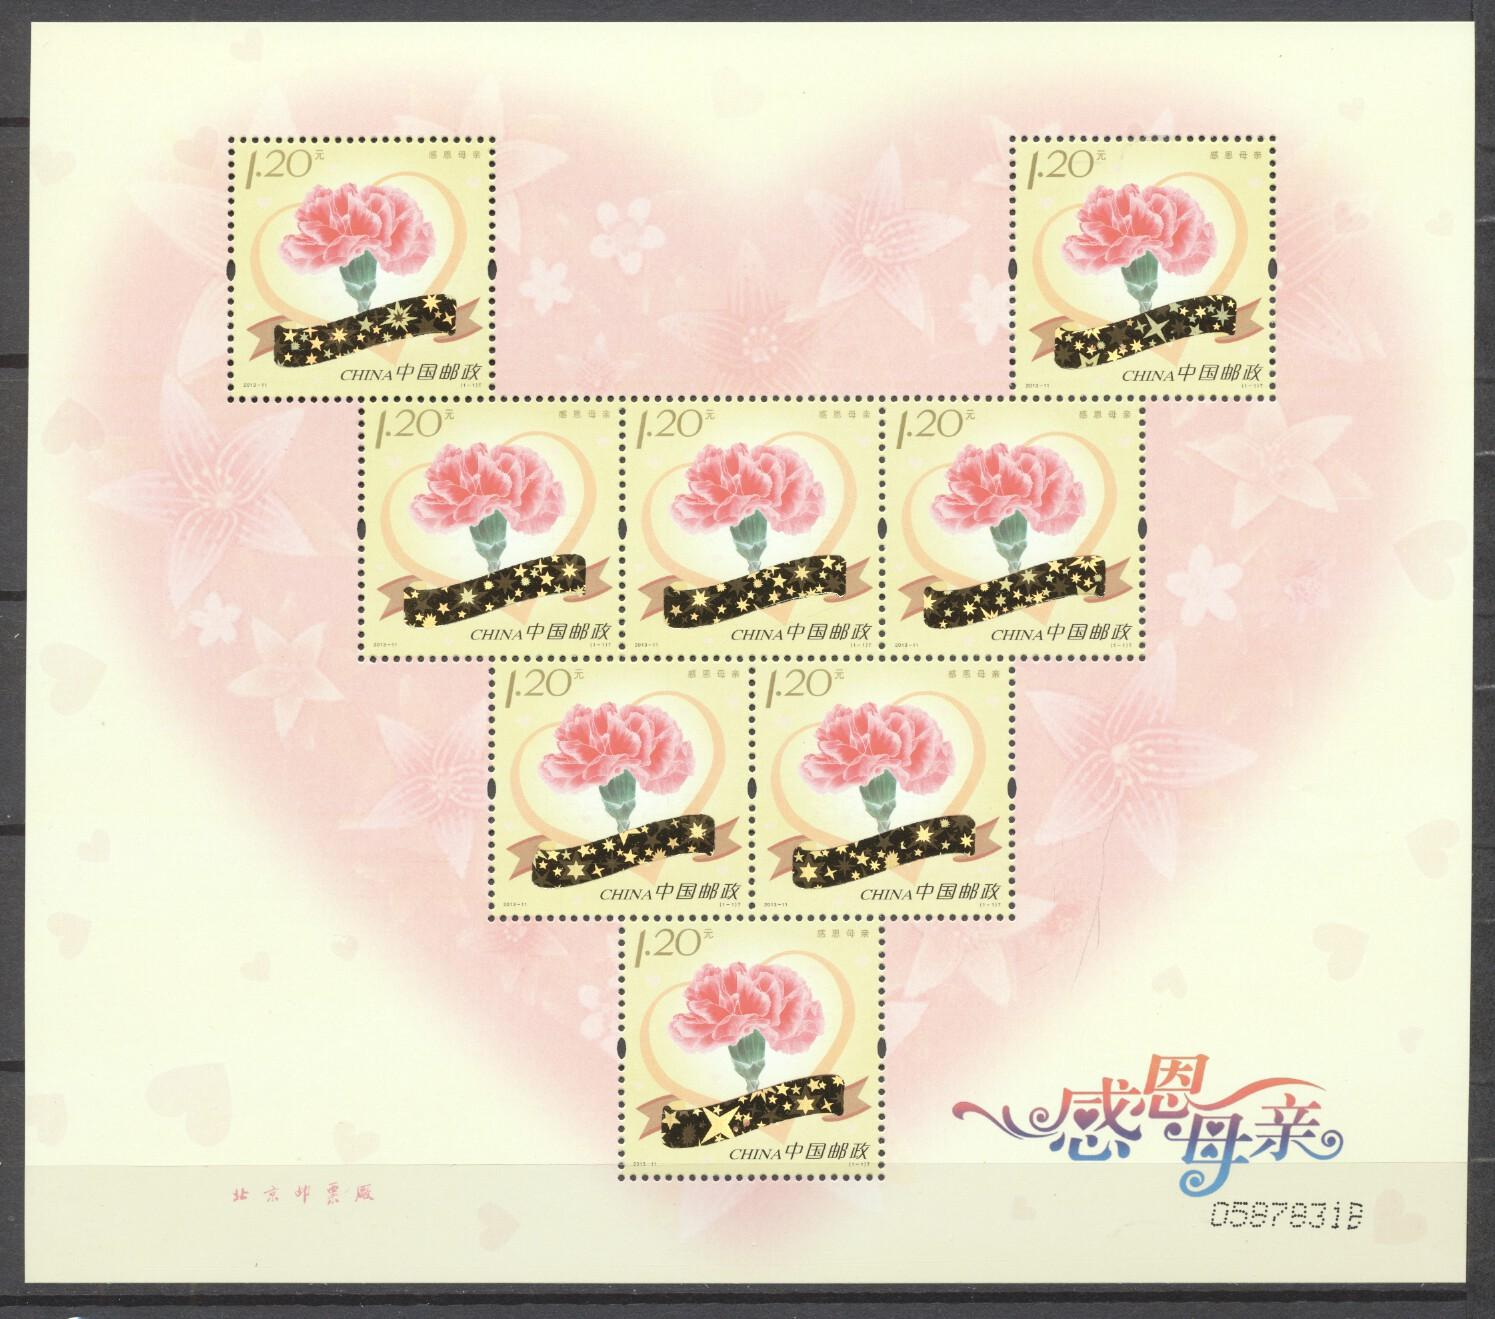 Stamps with Flowers, Greetings from China P.R. (image for product #263279)